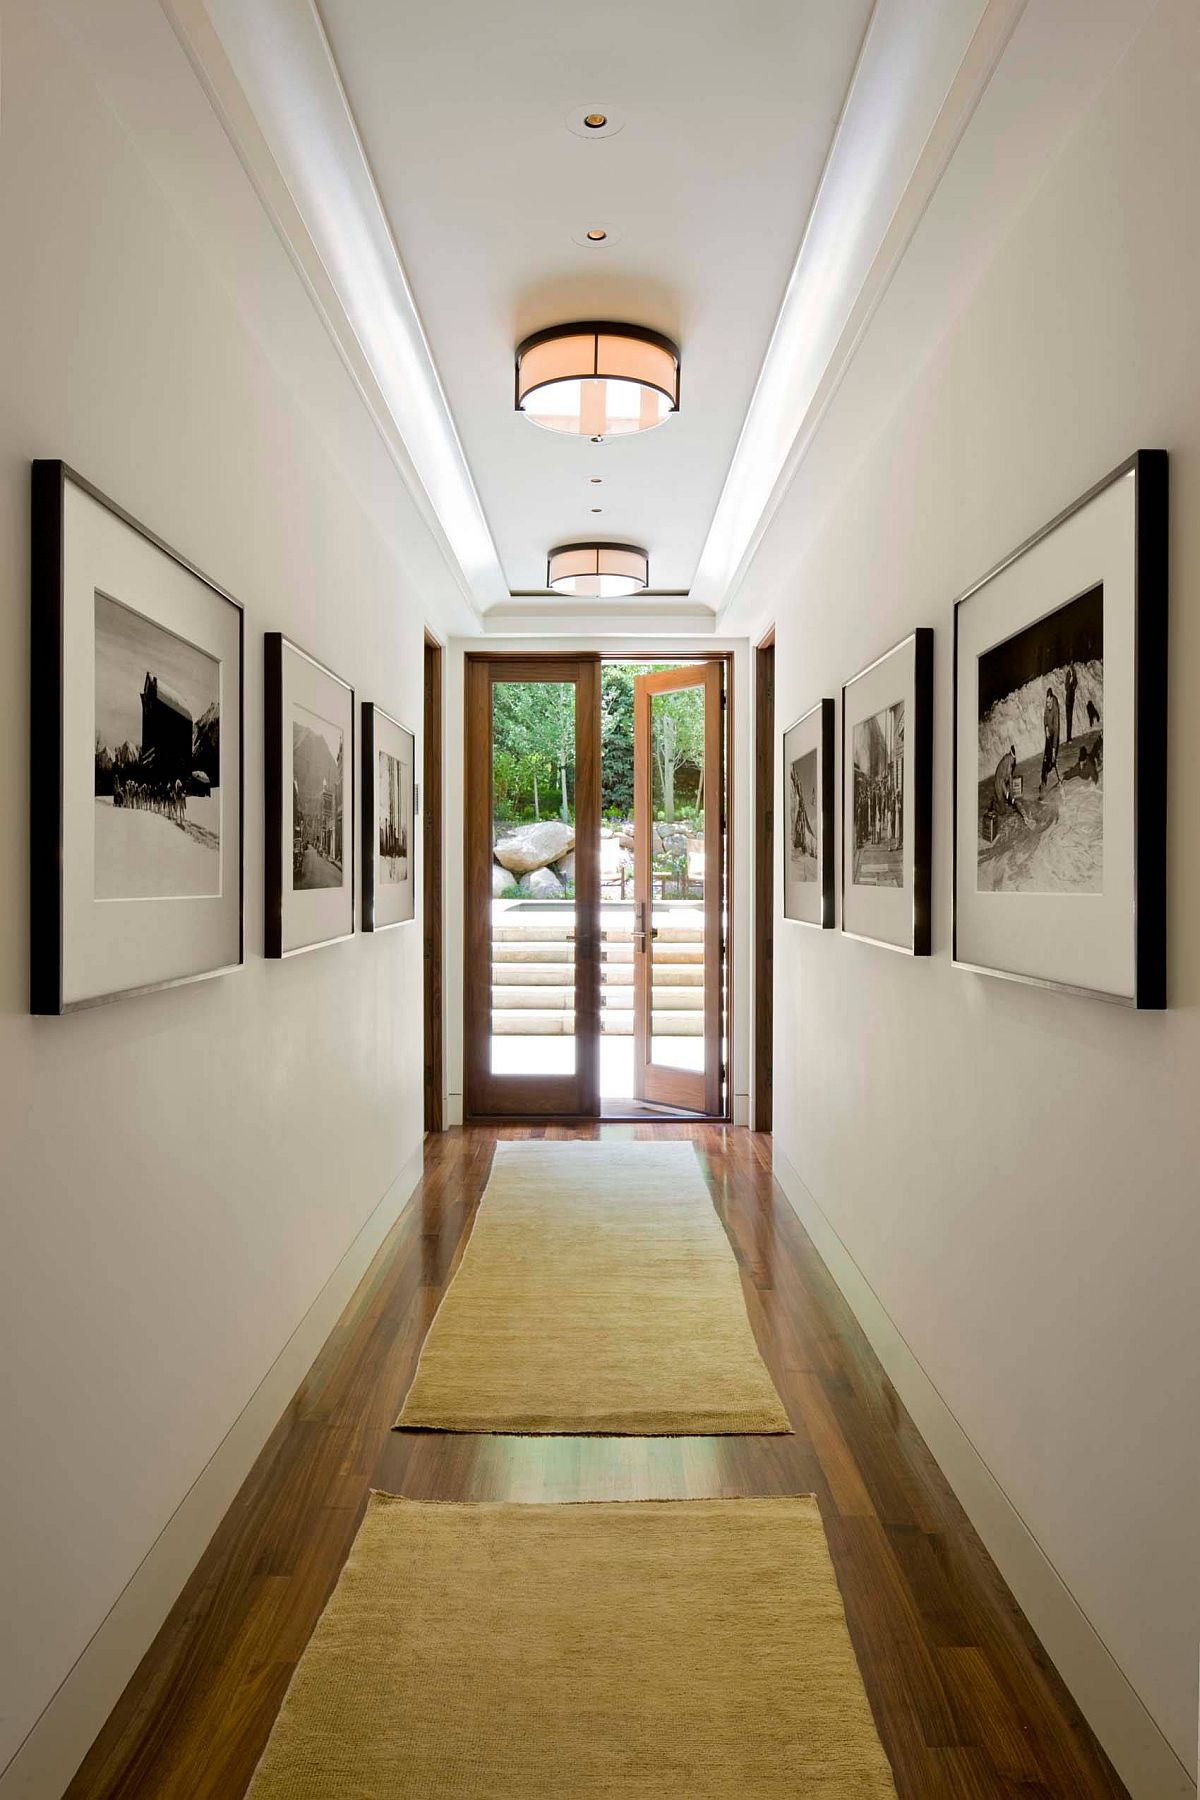 Gallery-styled wall art display for the hallway presents a picture of perfection